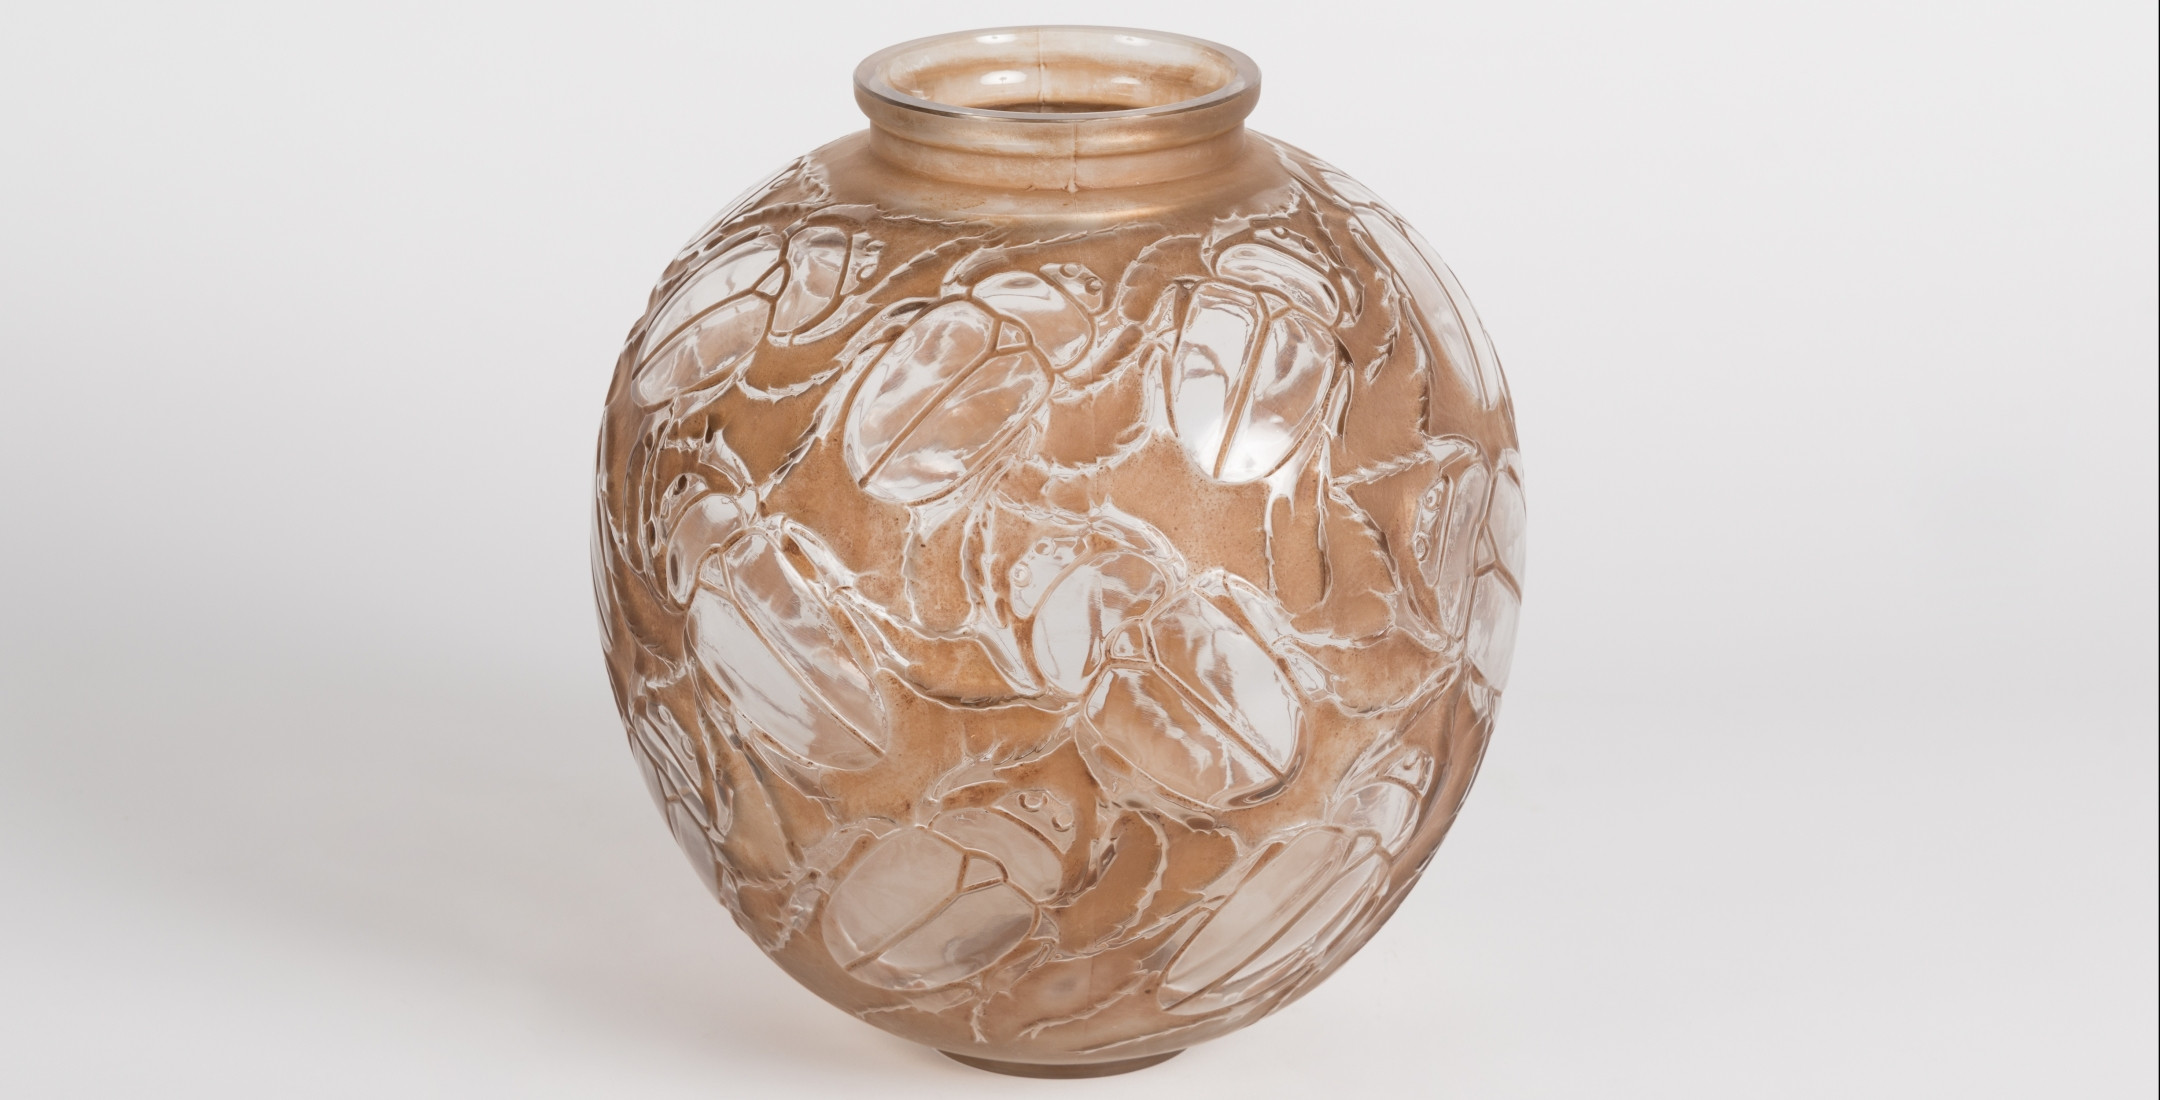 lalique dampierre vase of maison gerard throughout rena lalique gros scarabaes vase france circa 1923